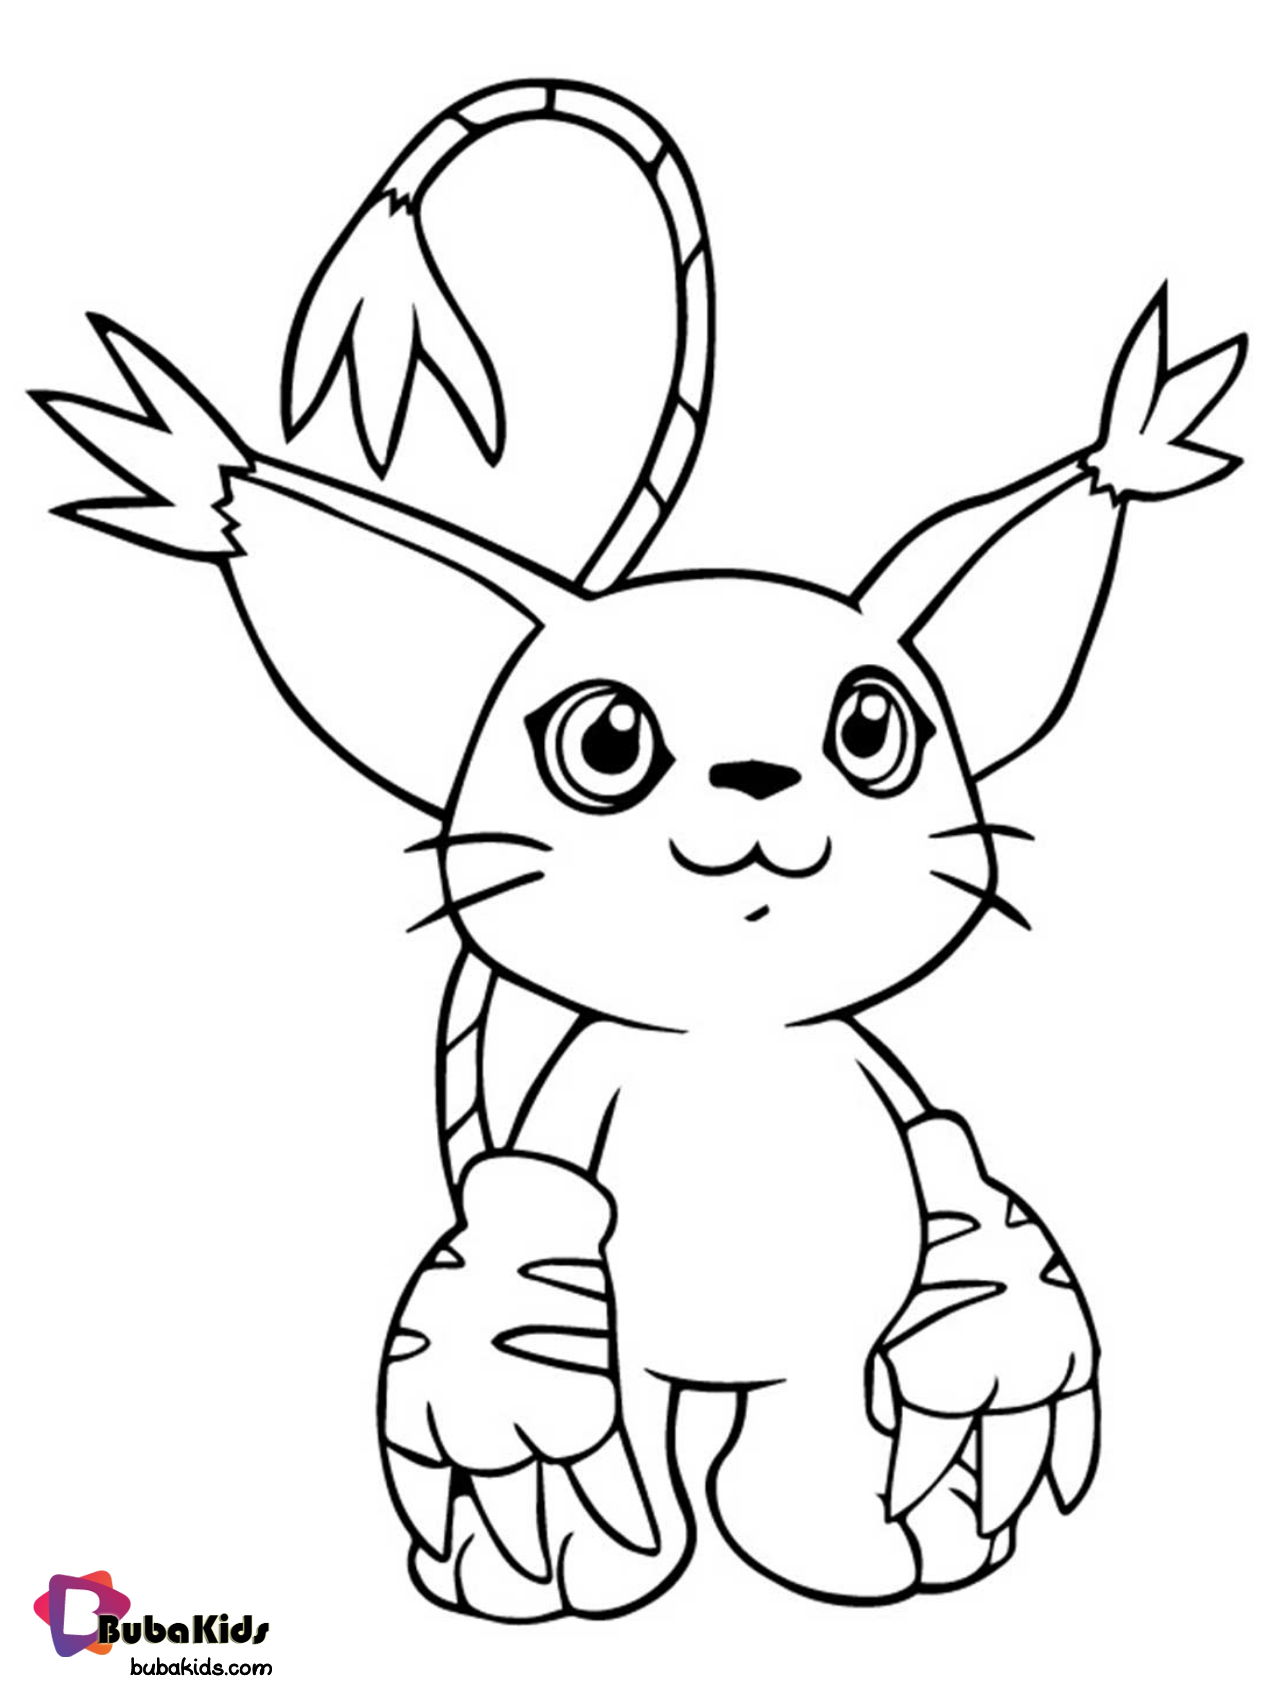 Free Digimon Coloring Pages Collection Of Cartoon Coloring Pages For Teenage Printable That You Can D In 2020 Poppy Coloring Page Pokemon Coloring Cute Coloring Pages